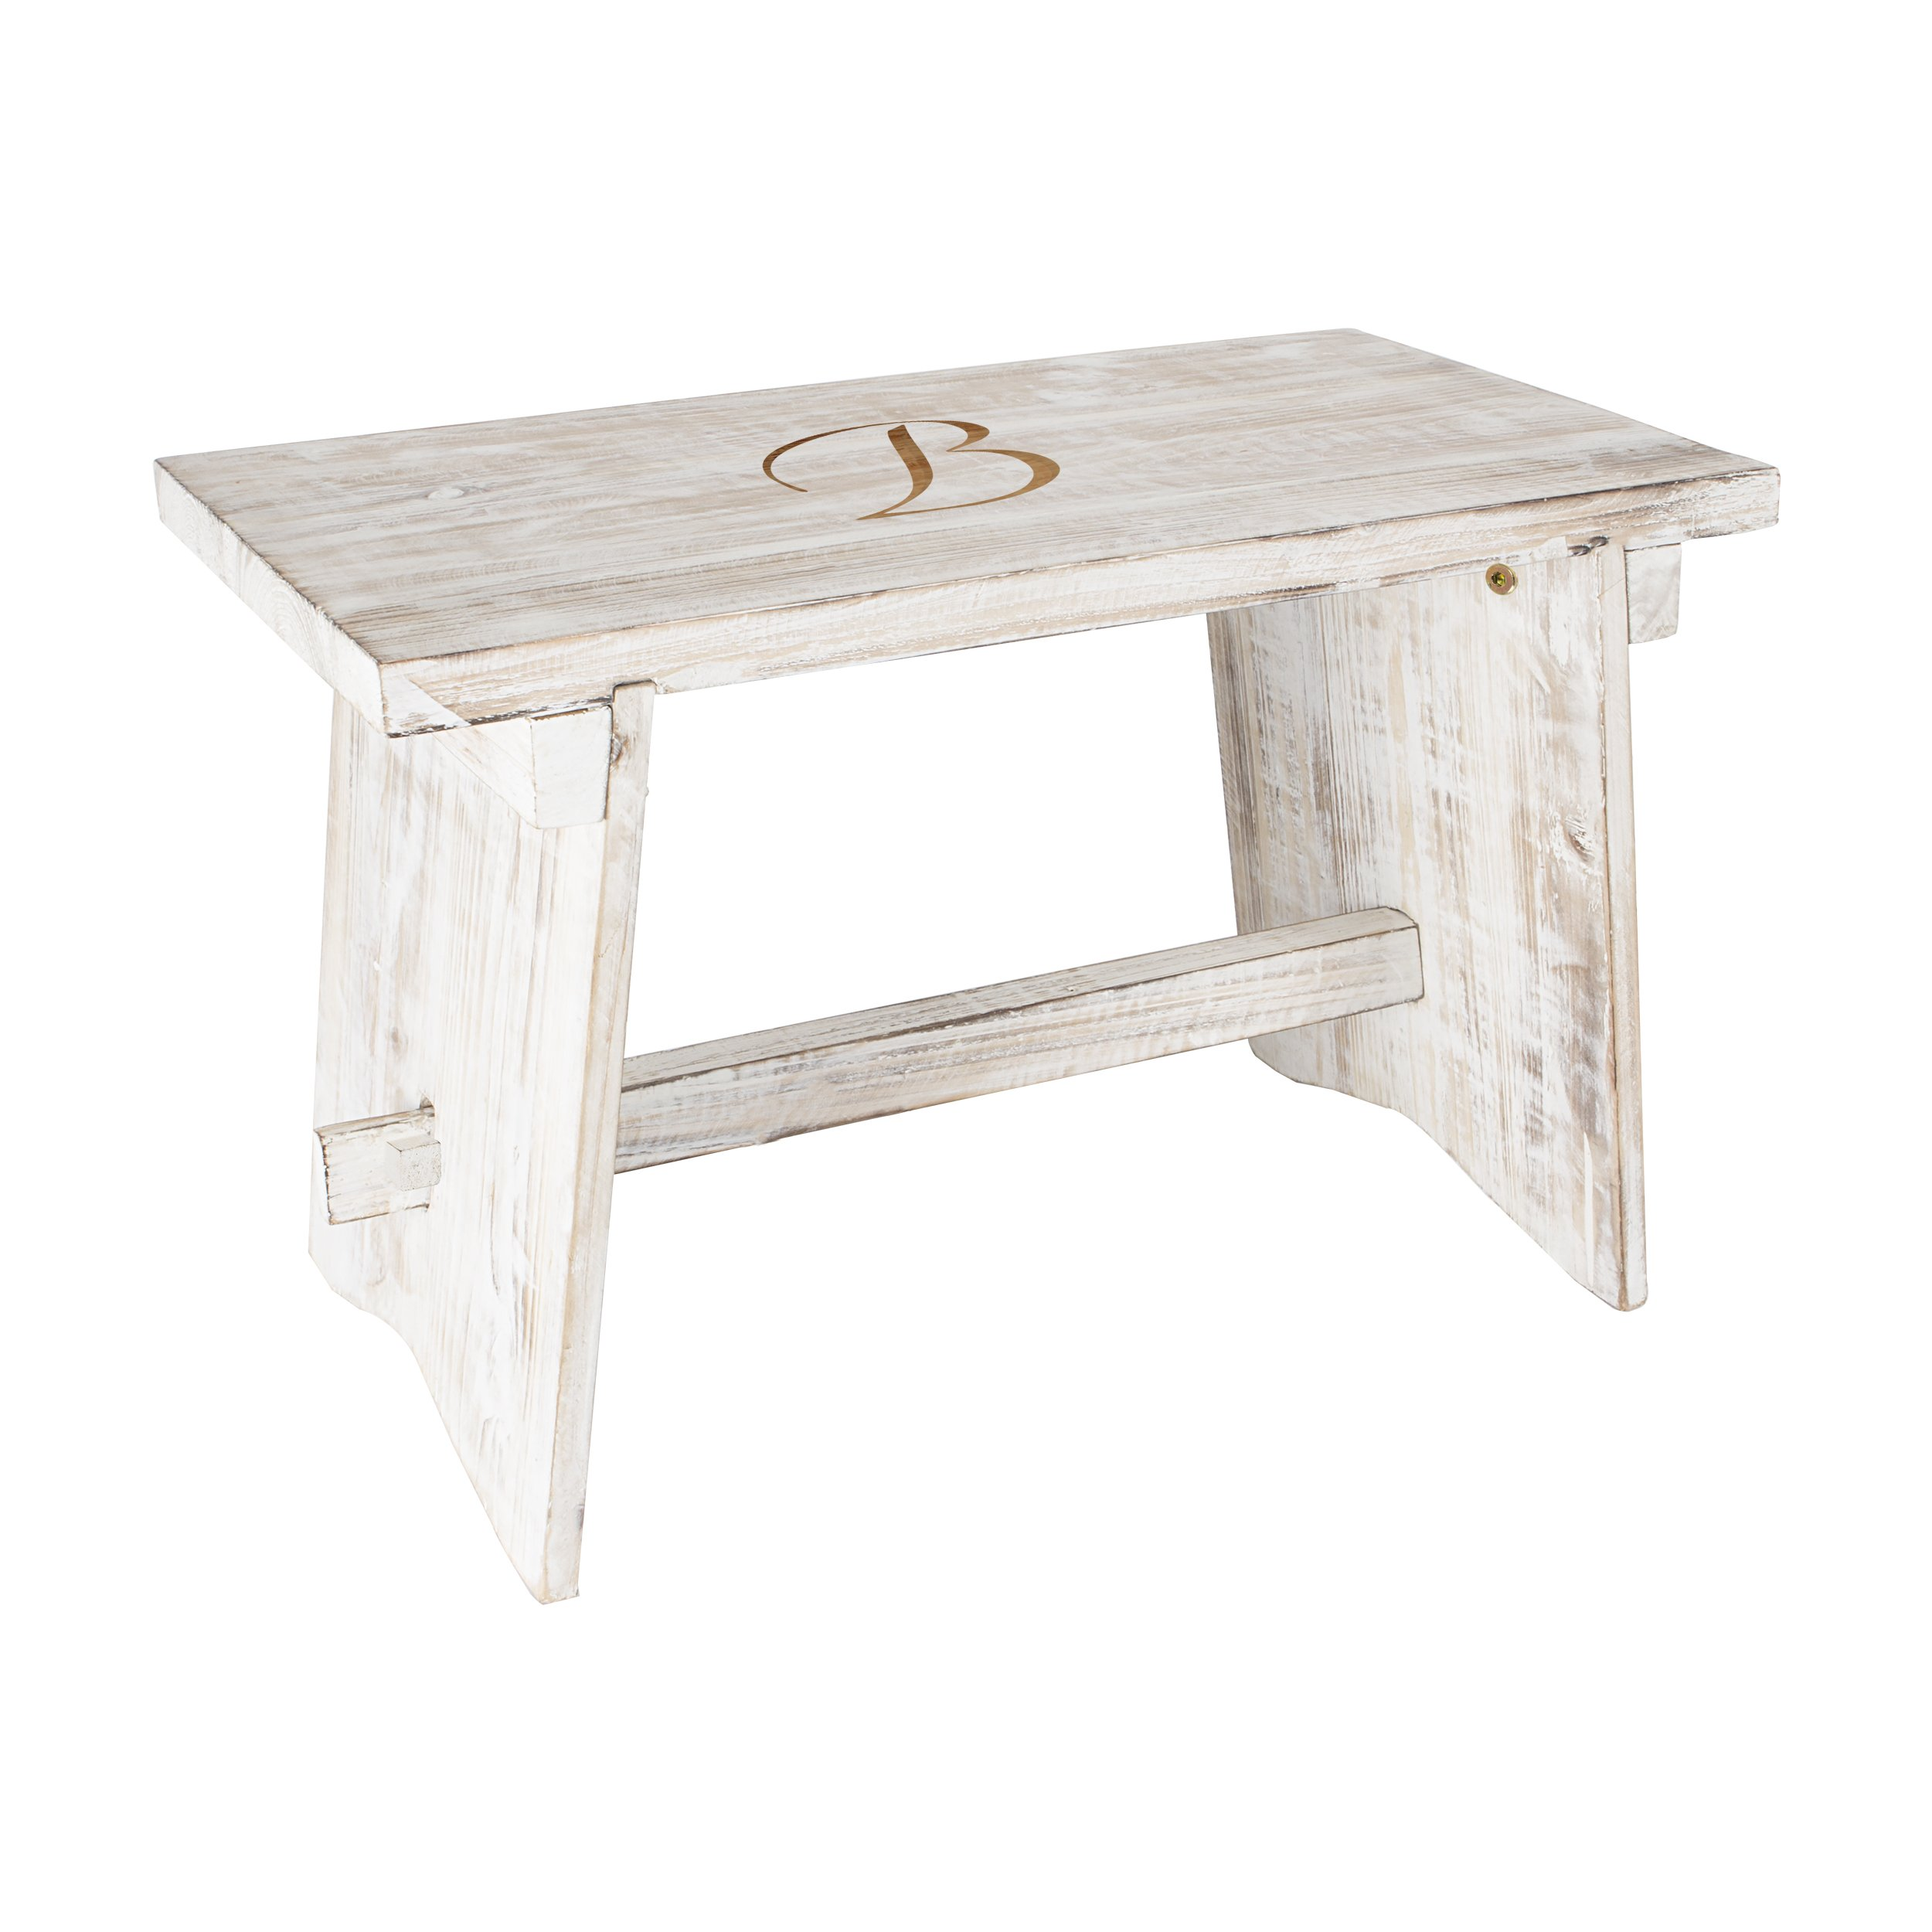 Personalized Wooden Guestbook Bench by Cathy's Concepts